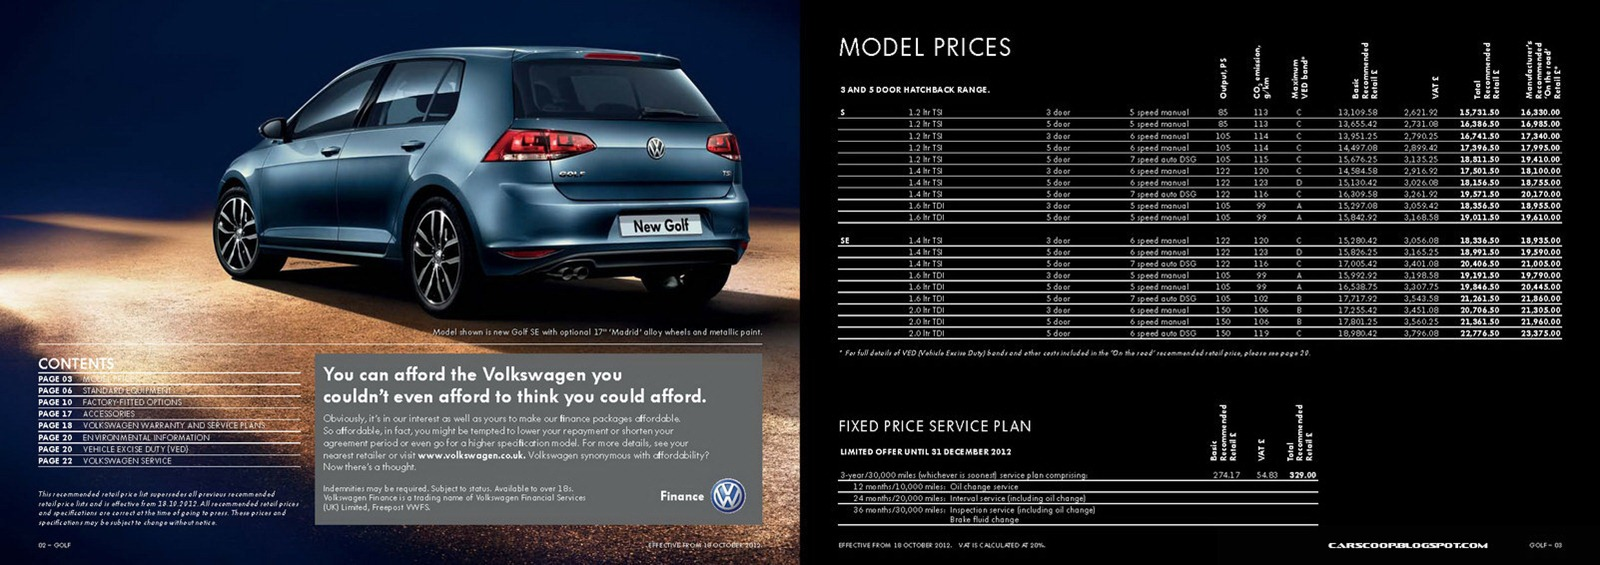 [Image: 2013-VW-Golf-UK-1CarScoop%25255B4%25255D.jpg]